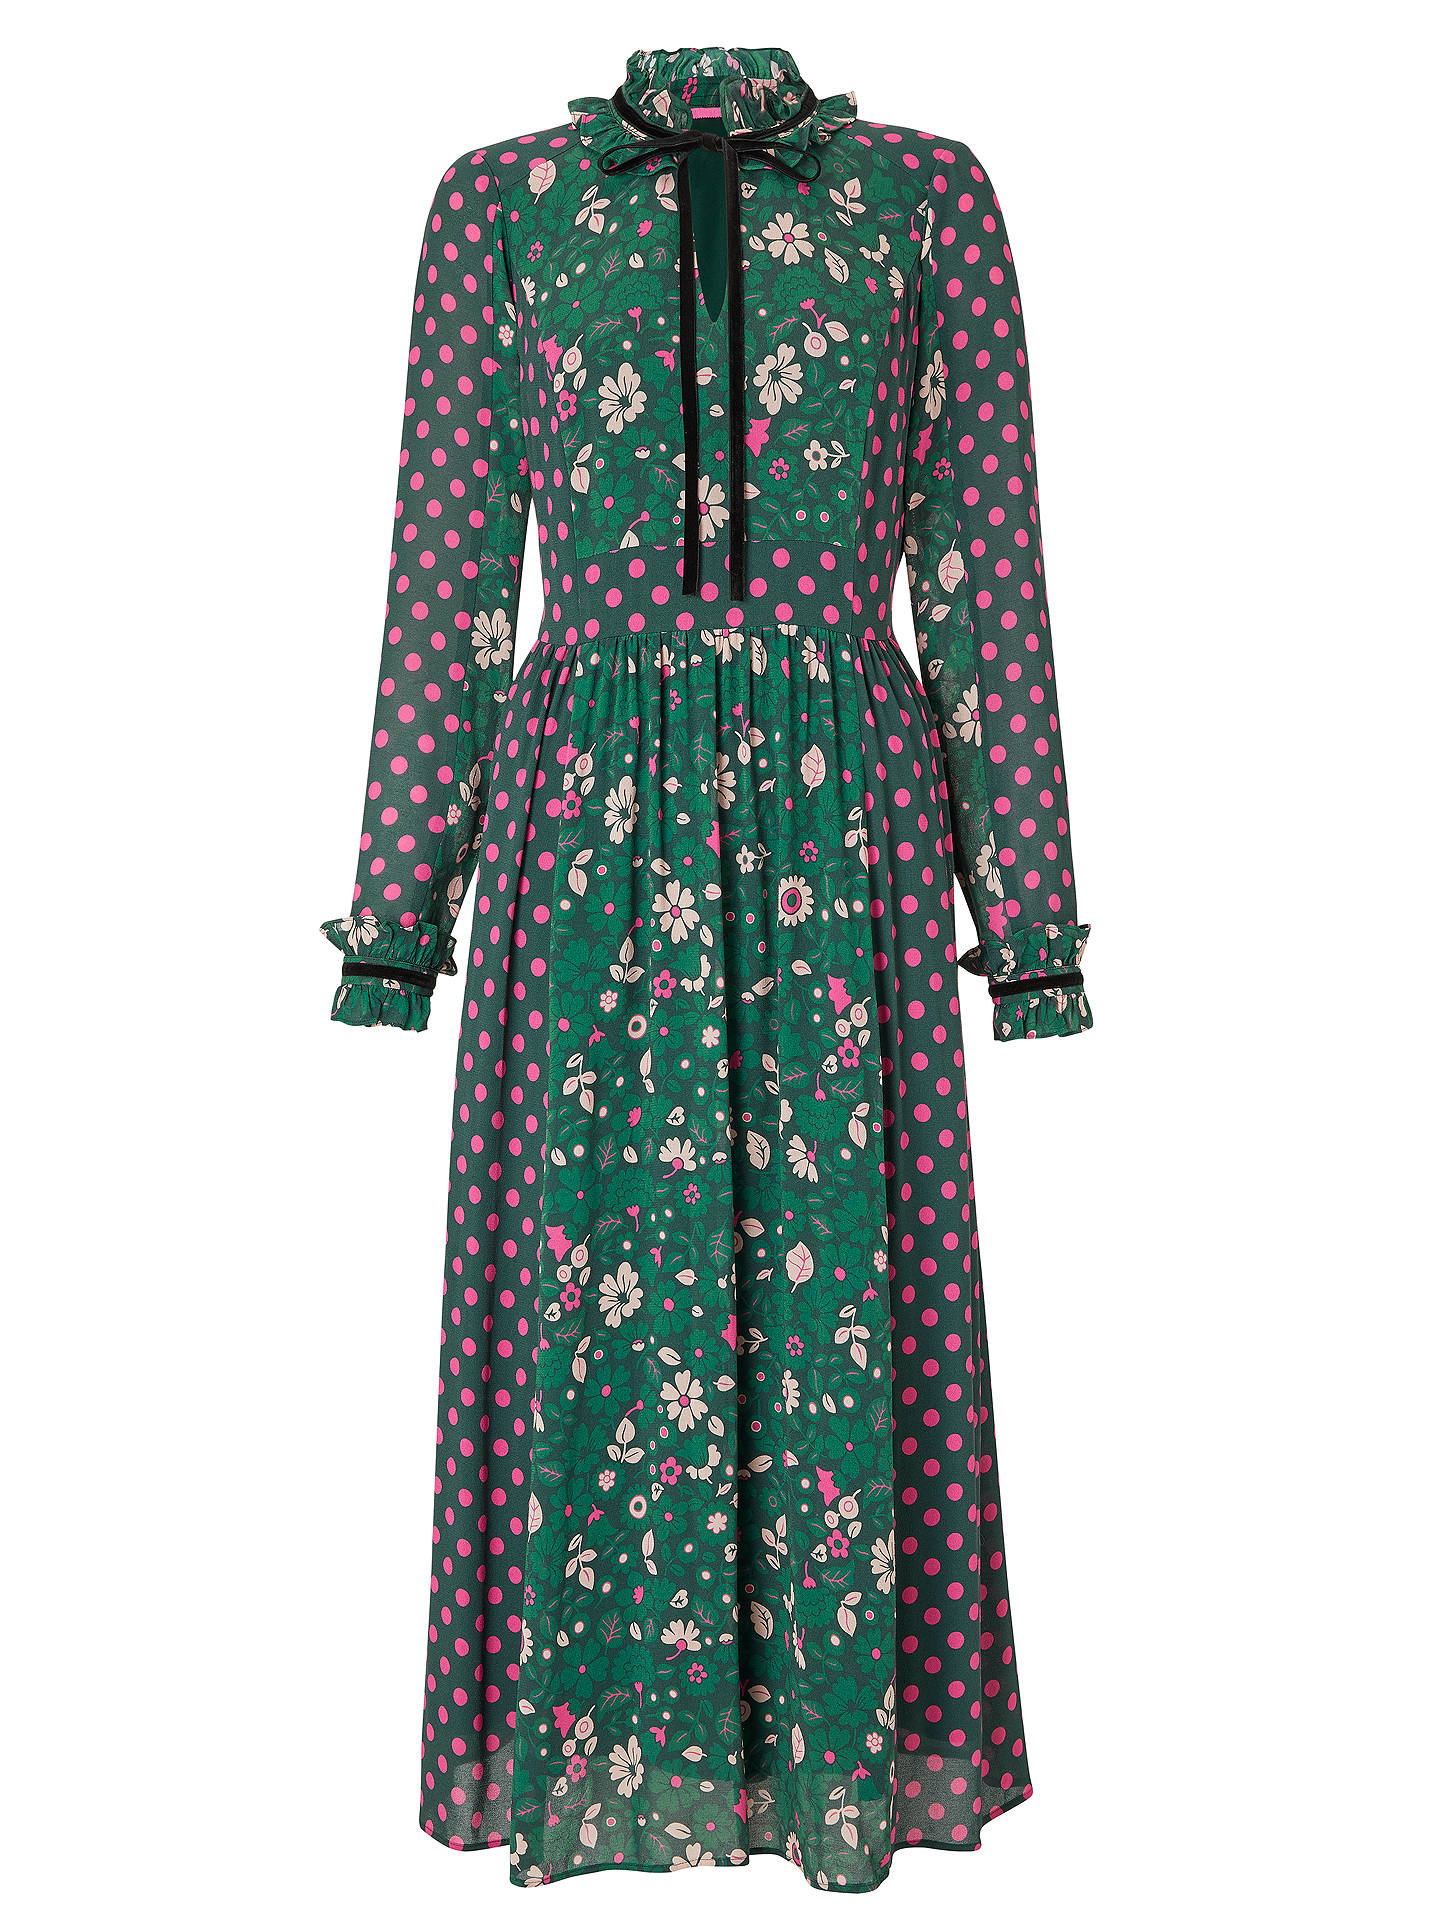 BuyBoden Cecilla Midi Dress, Chatsworth Green, 16 Online at johnlewis.com